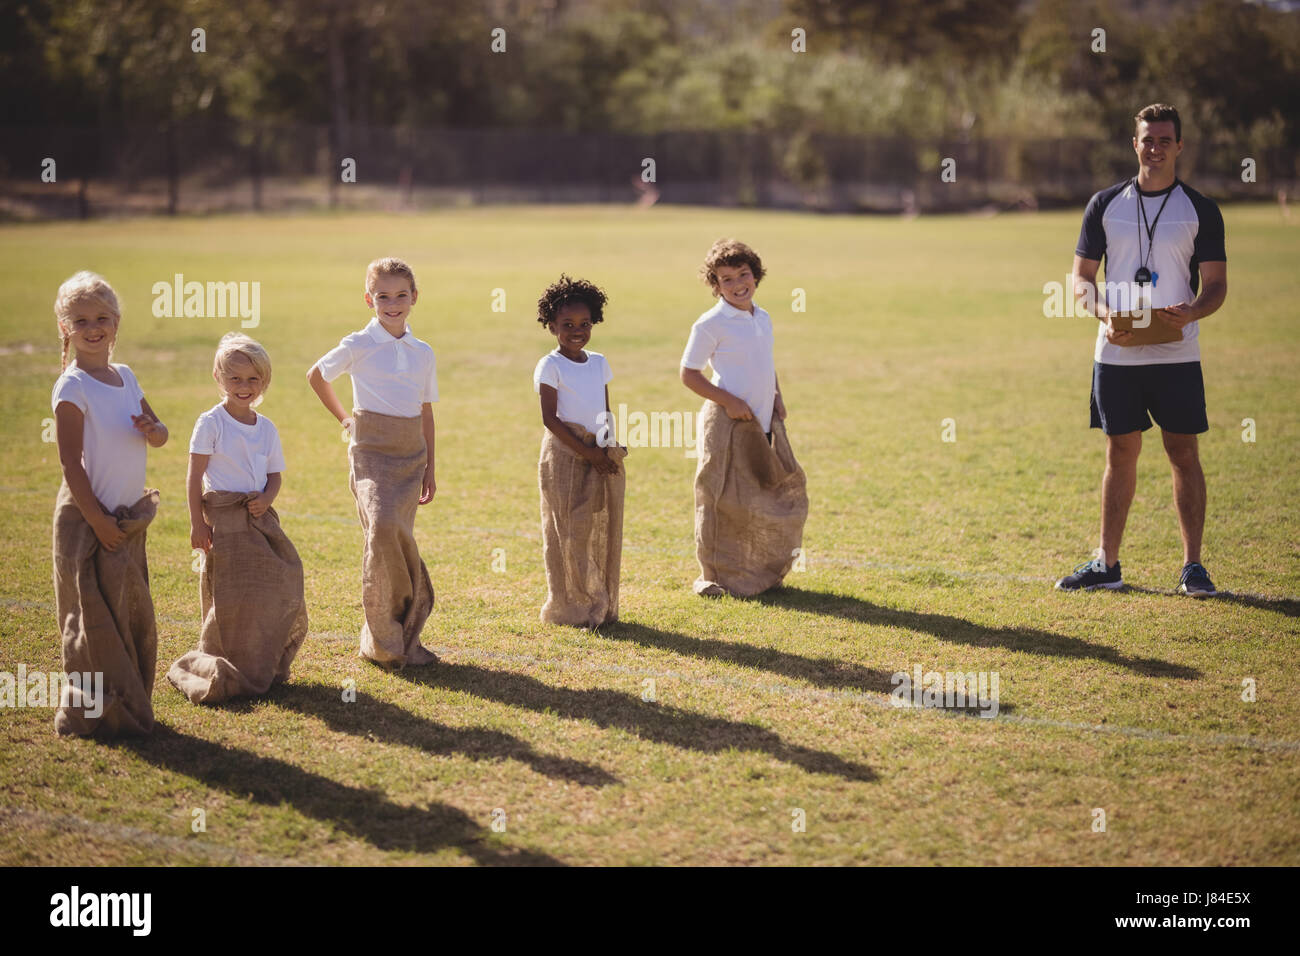 Portrait of coach and schoolgirls standing in park during sack race on a sunny day - Stock Image